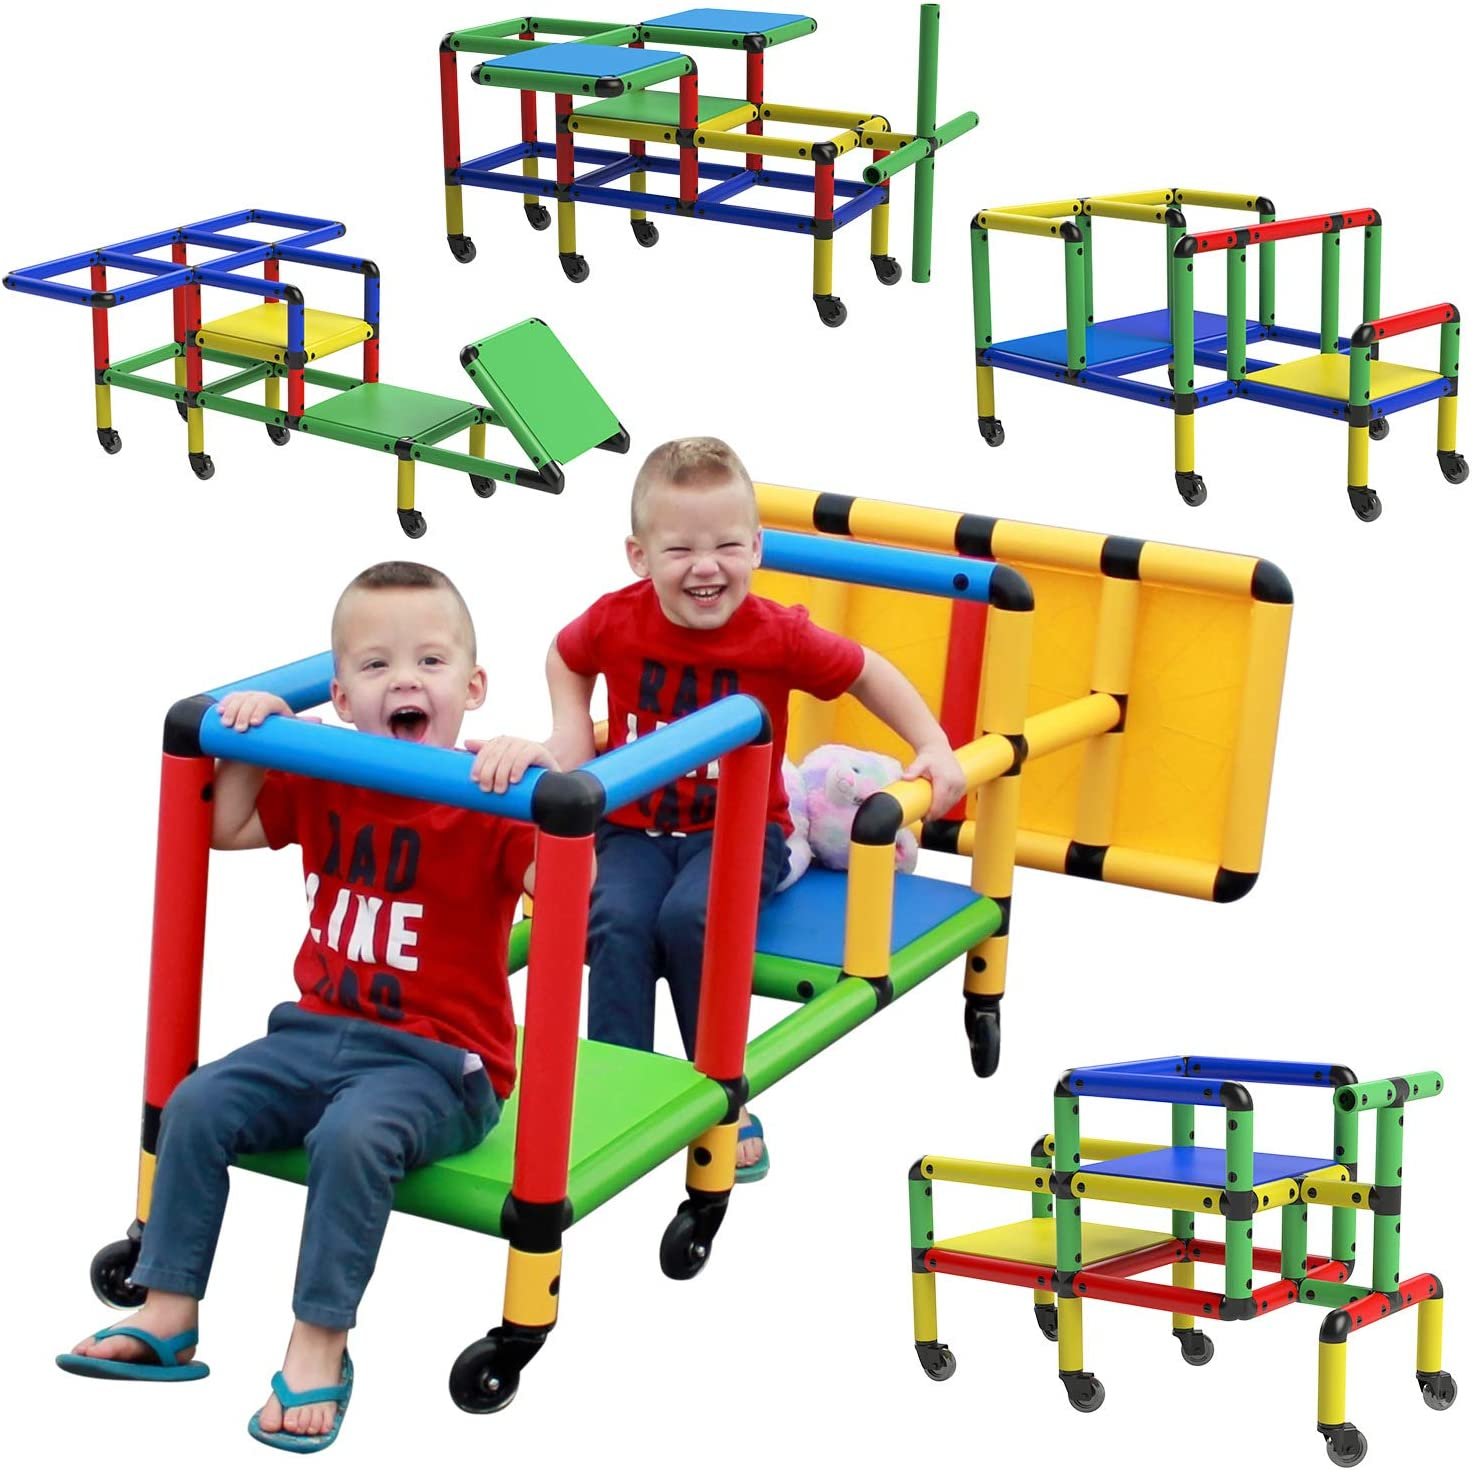 Funphix Wheelies - Buildable Play Structure Set with Wheels, Indoor and Outdoor STEM Learning Construction Toy for Ages 2-12 Years